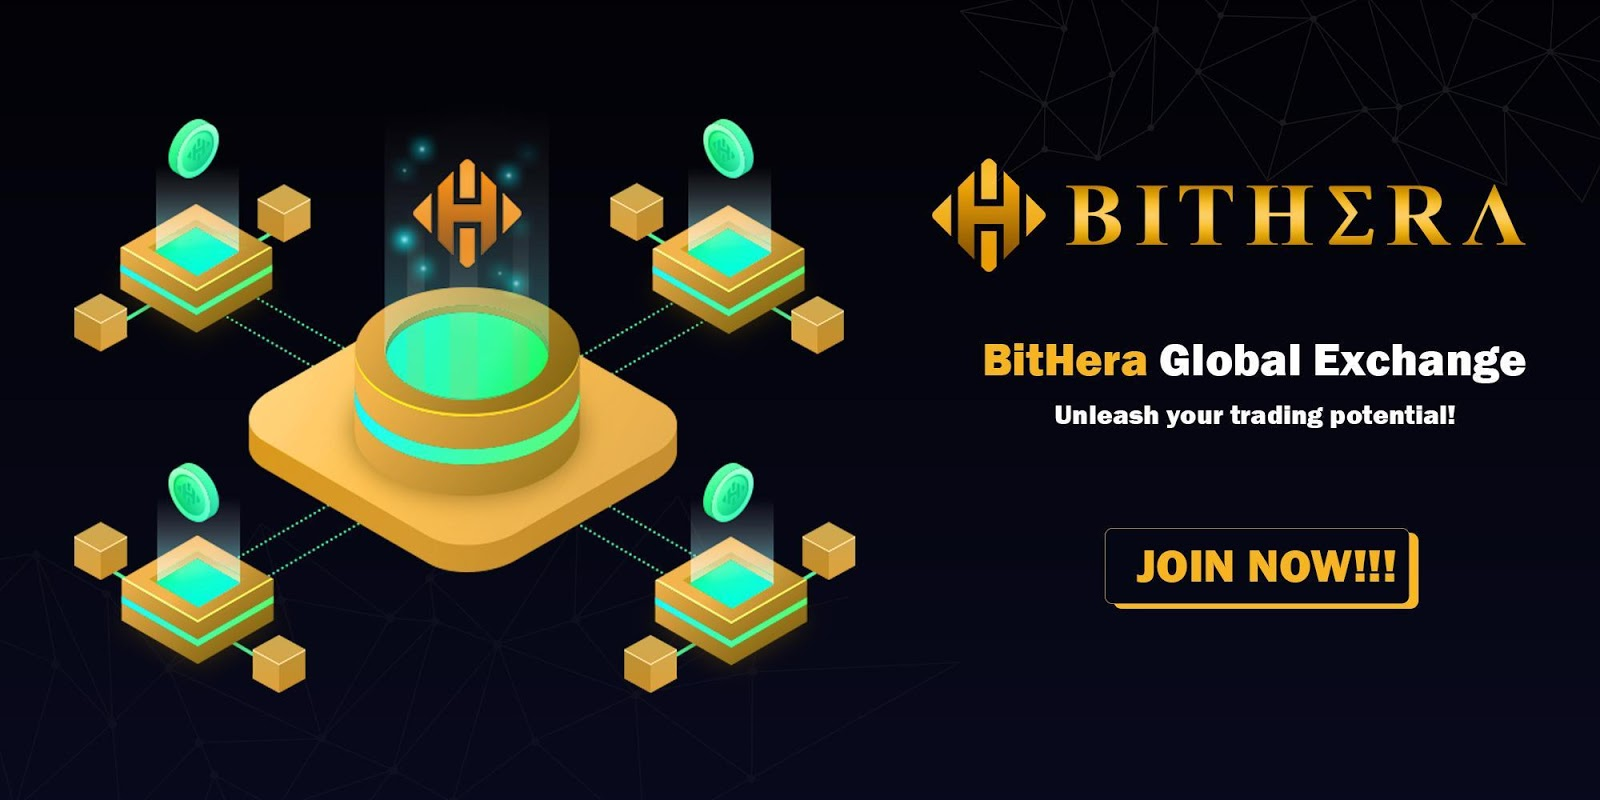 bithera cryptocurrency exchange